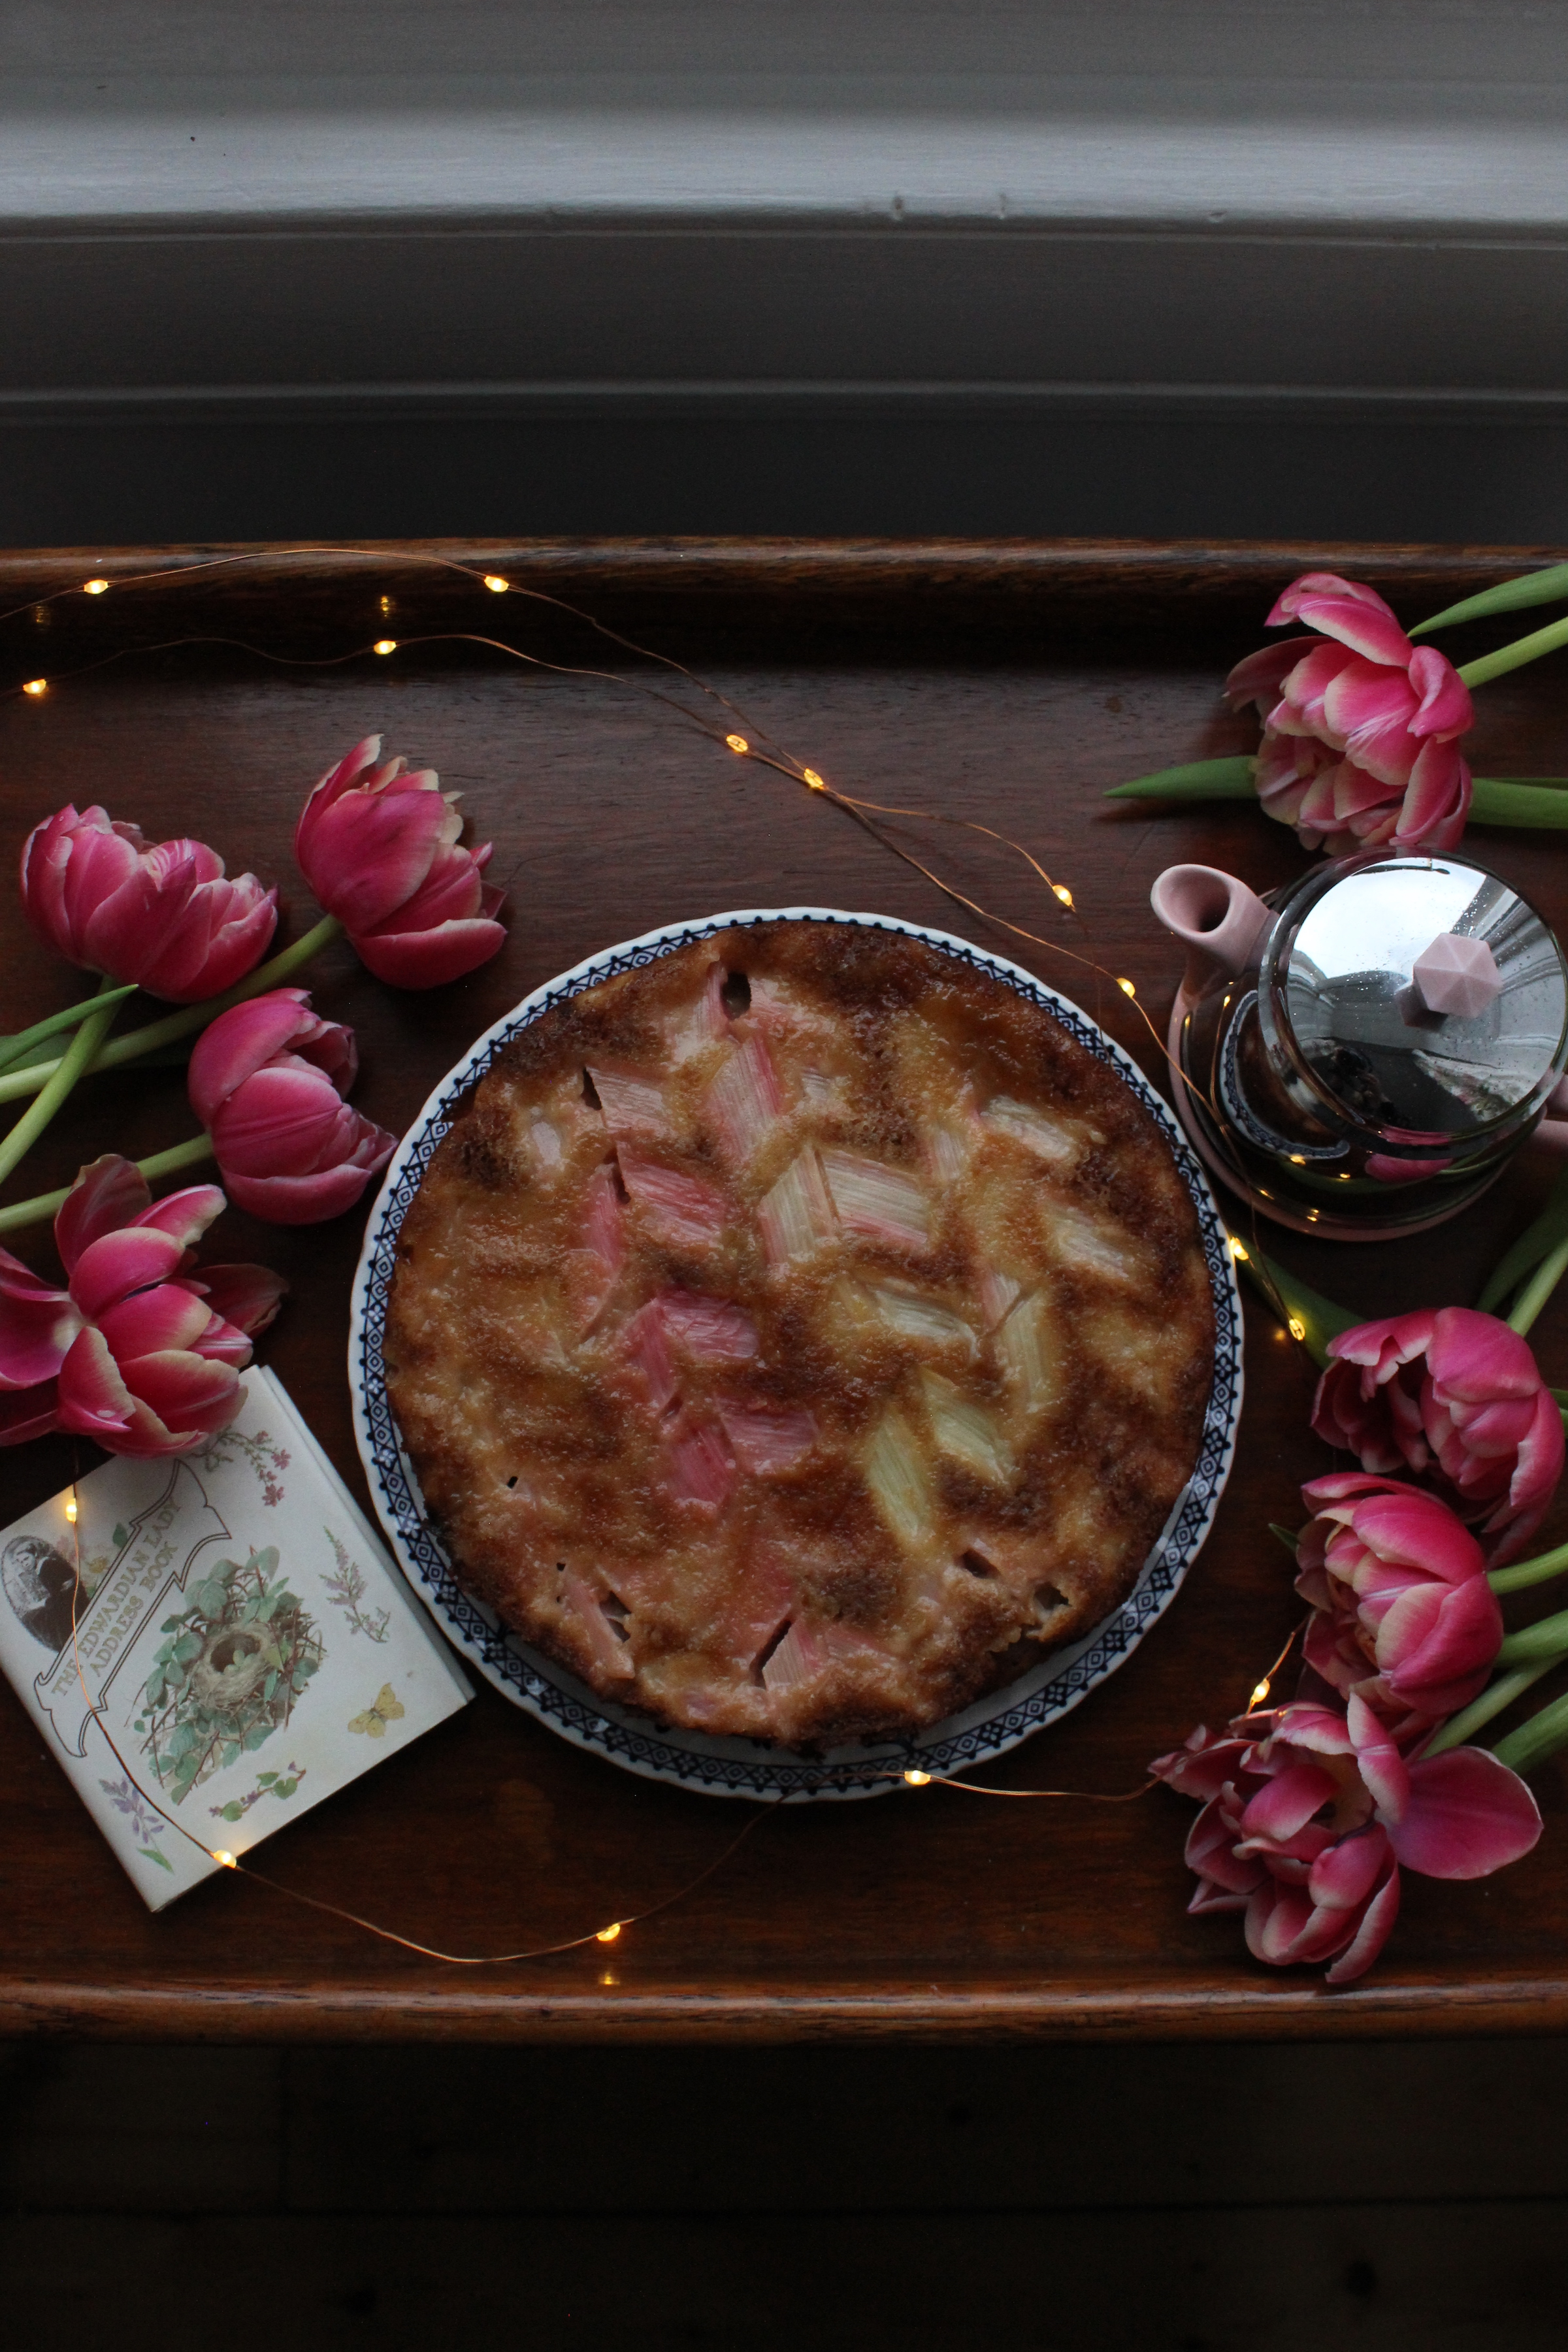 Rhubarb, Ginger and White Chocolate Upside-down Cake